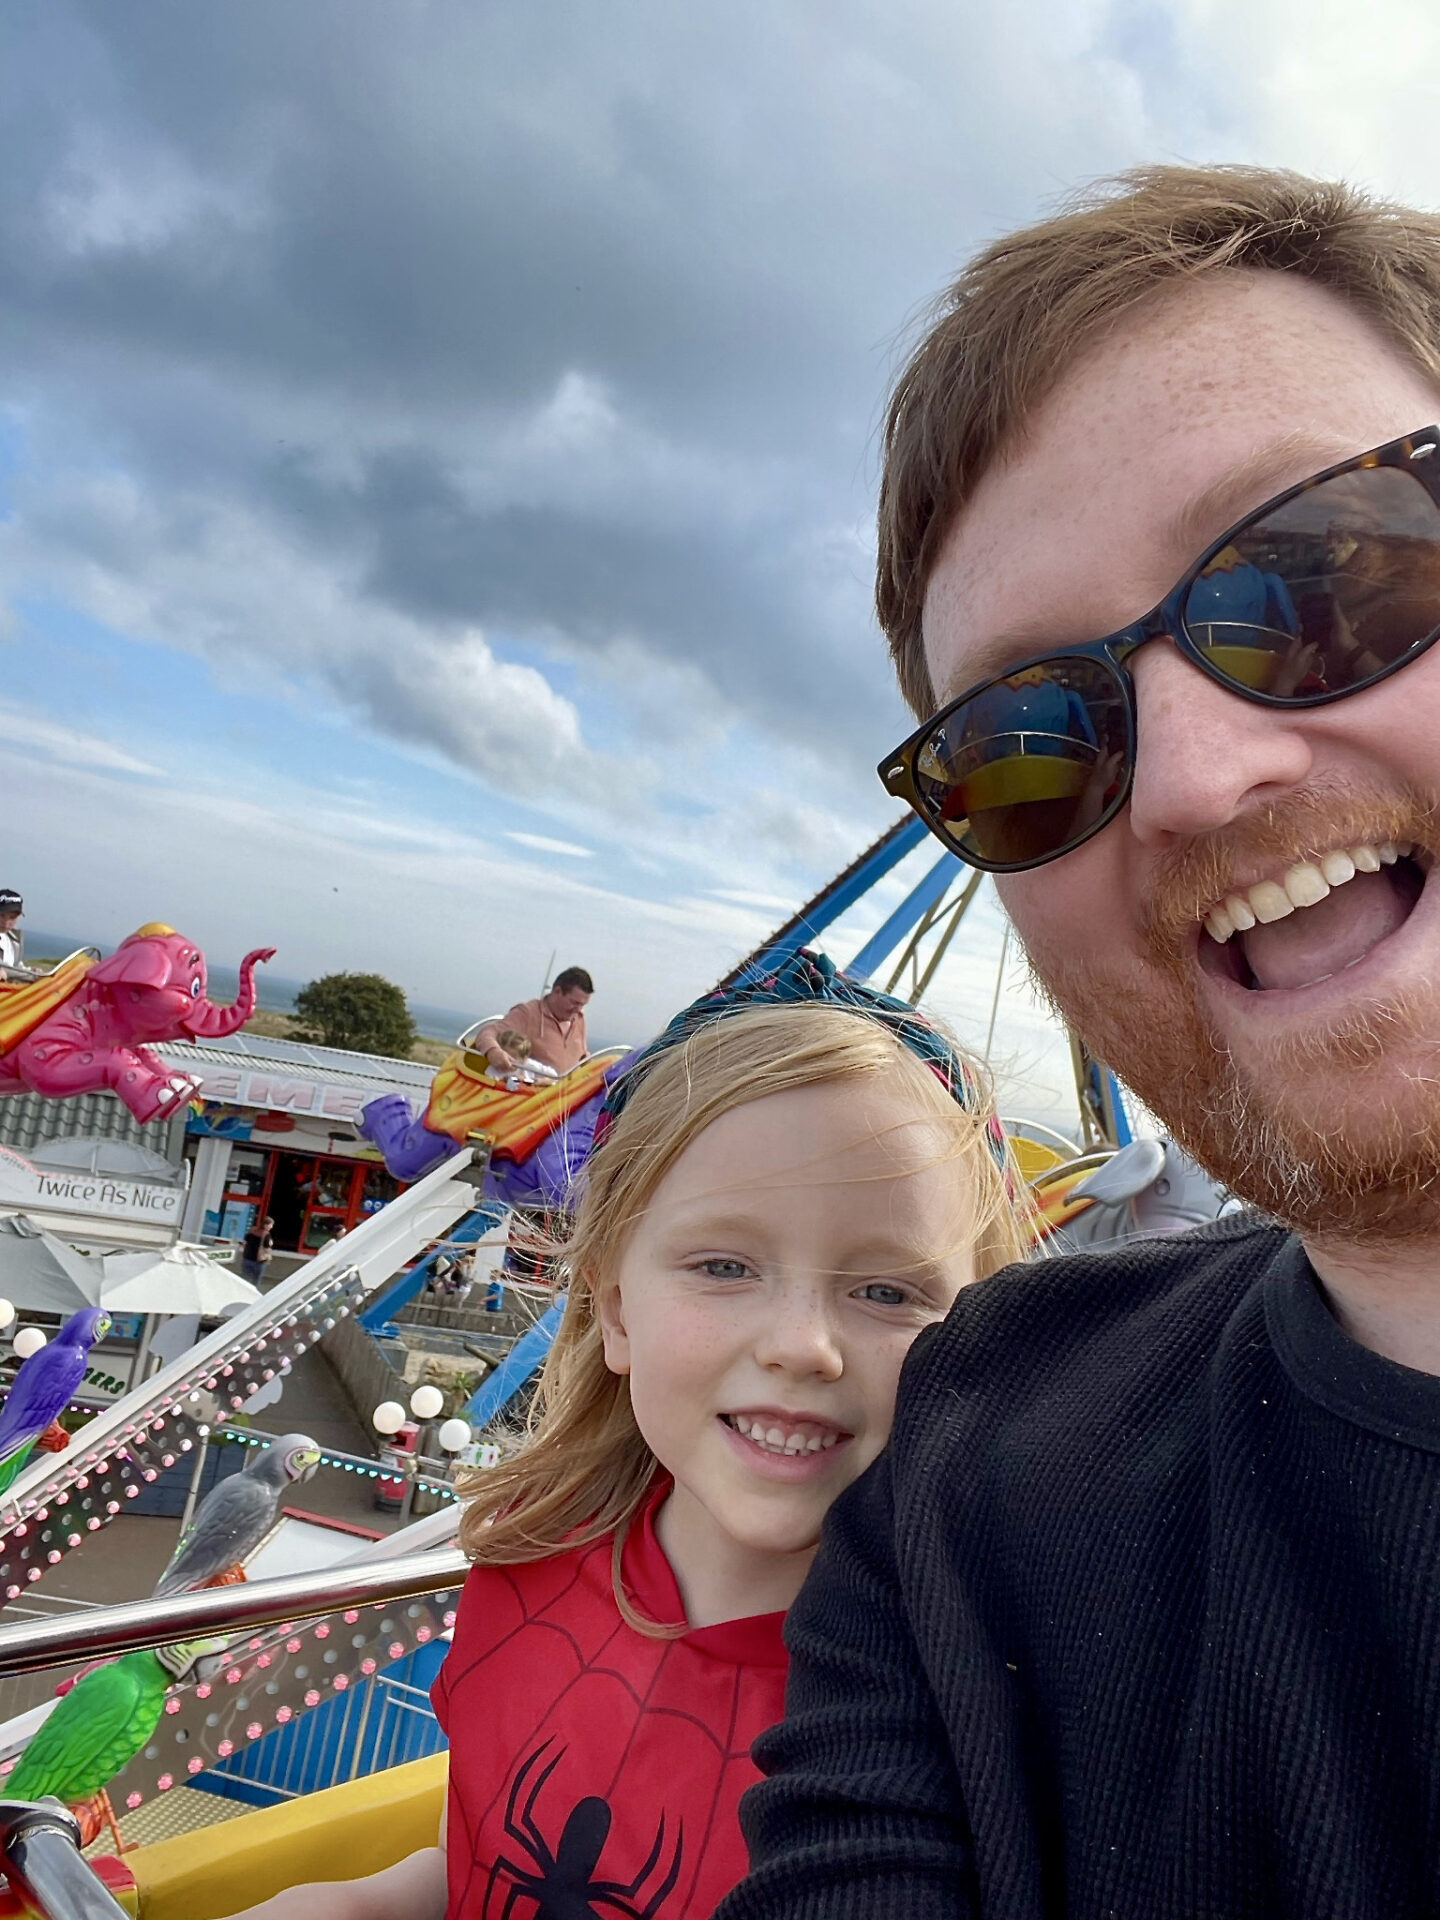 A father and daughter smiling on a fairground ride